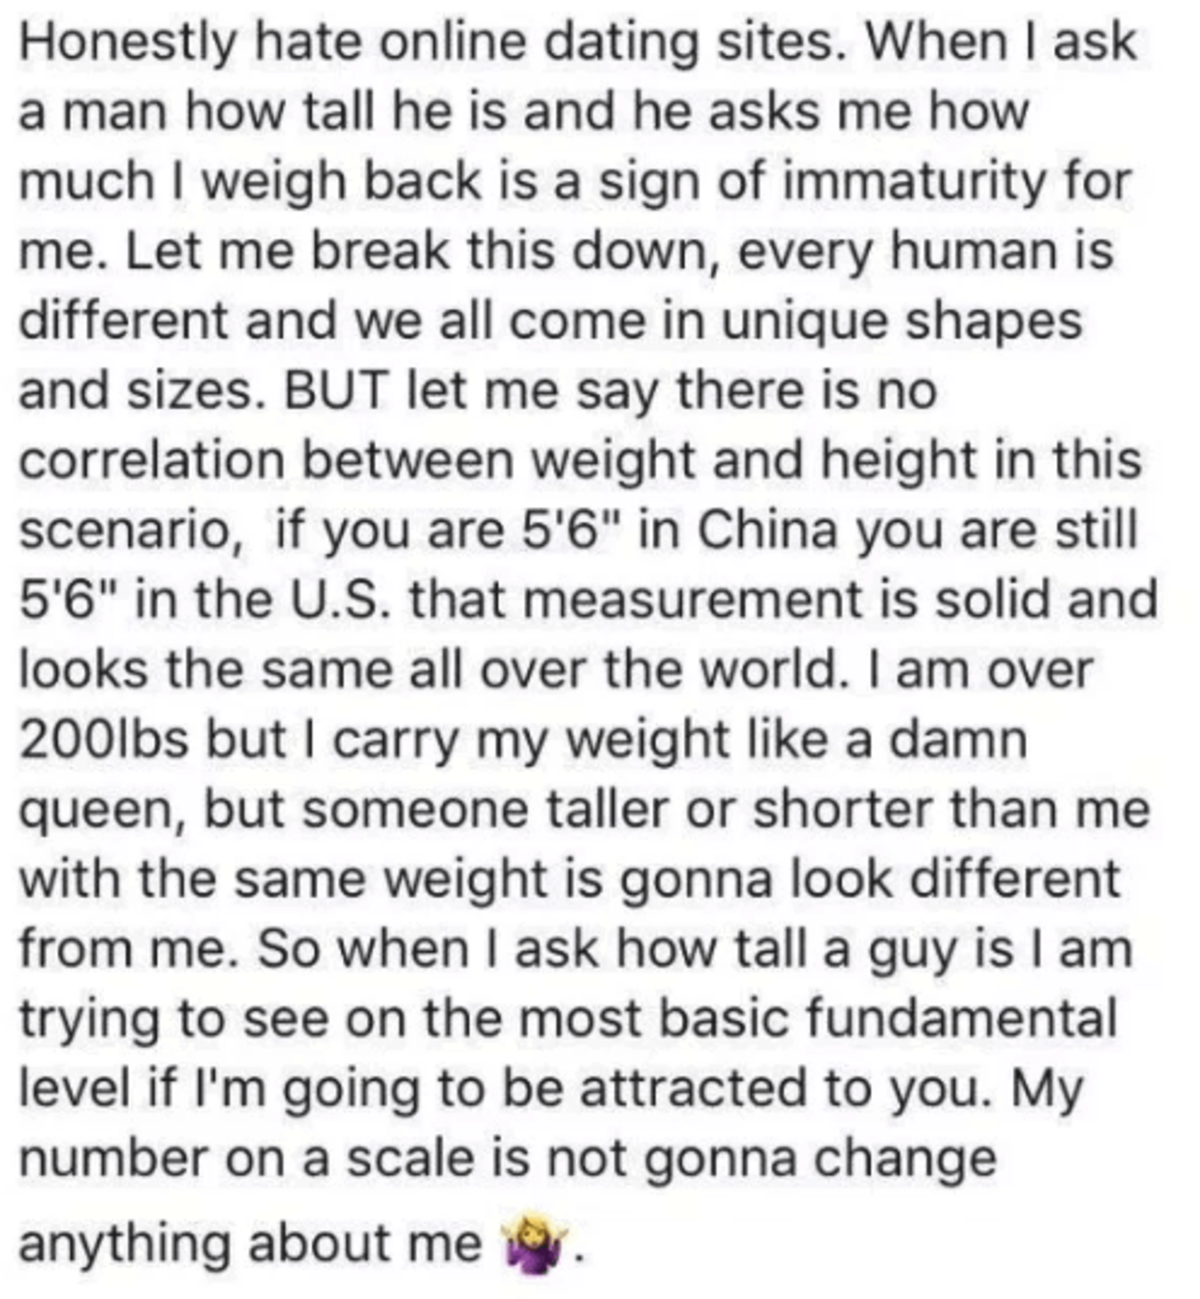 Big Headed. .. I'm a female and if you ask a guy how tall he is he can ask how heavy you are. If you're gonna show how shallow you are he can too. Everyone has a specific type